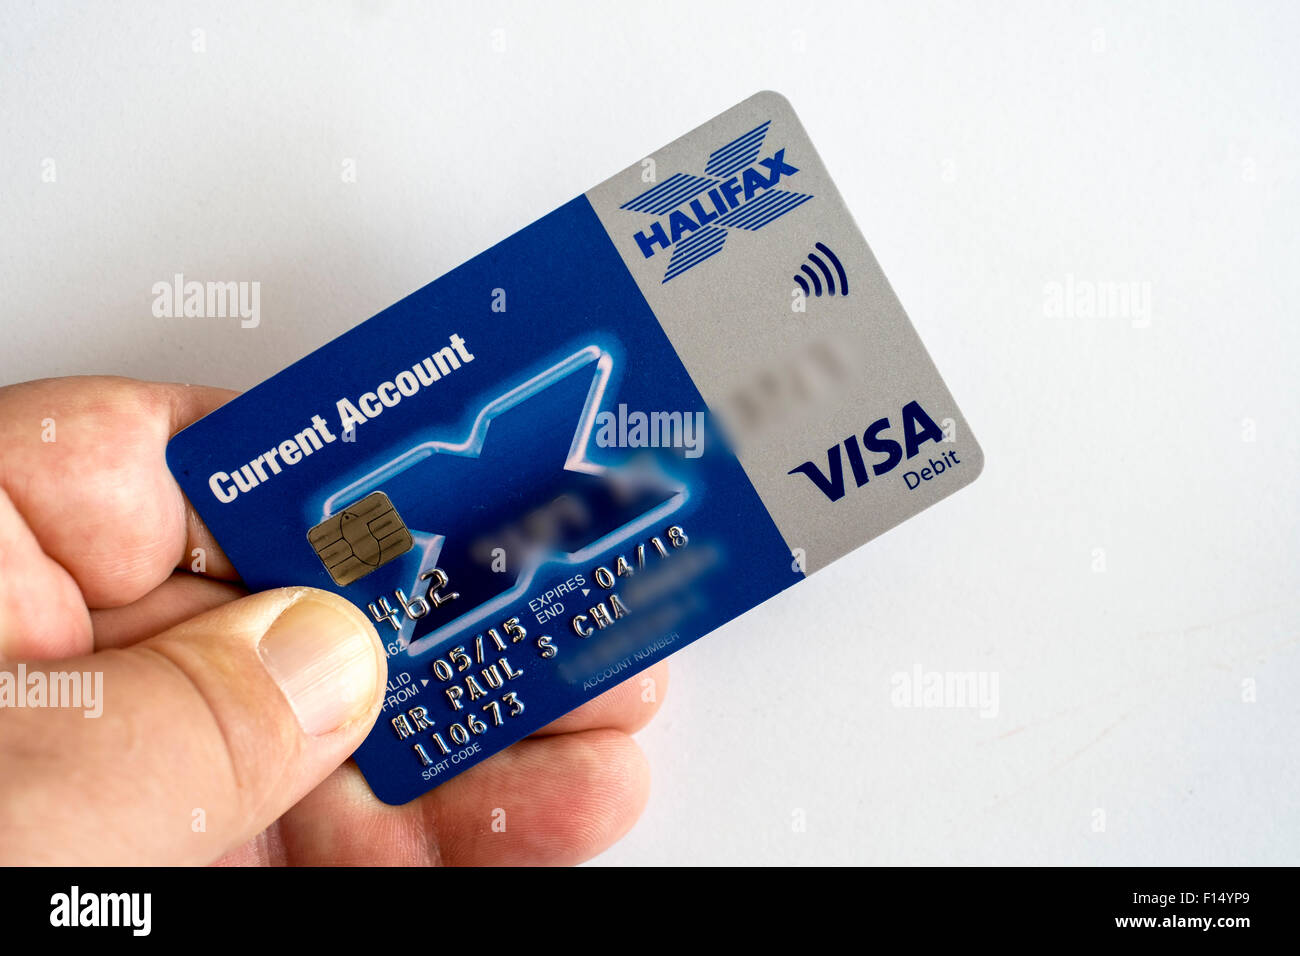 Halifax Bank Card Stock Photos & Halifax Bank Card Stock Images - Alamy